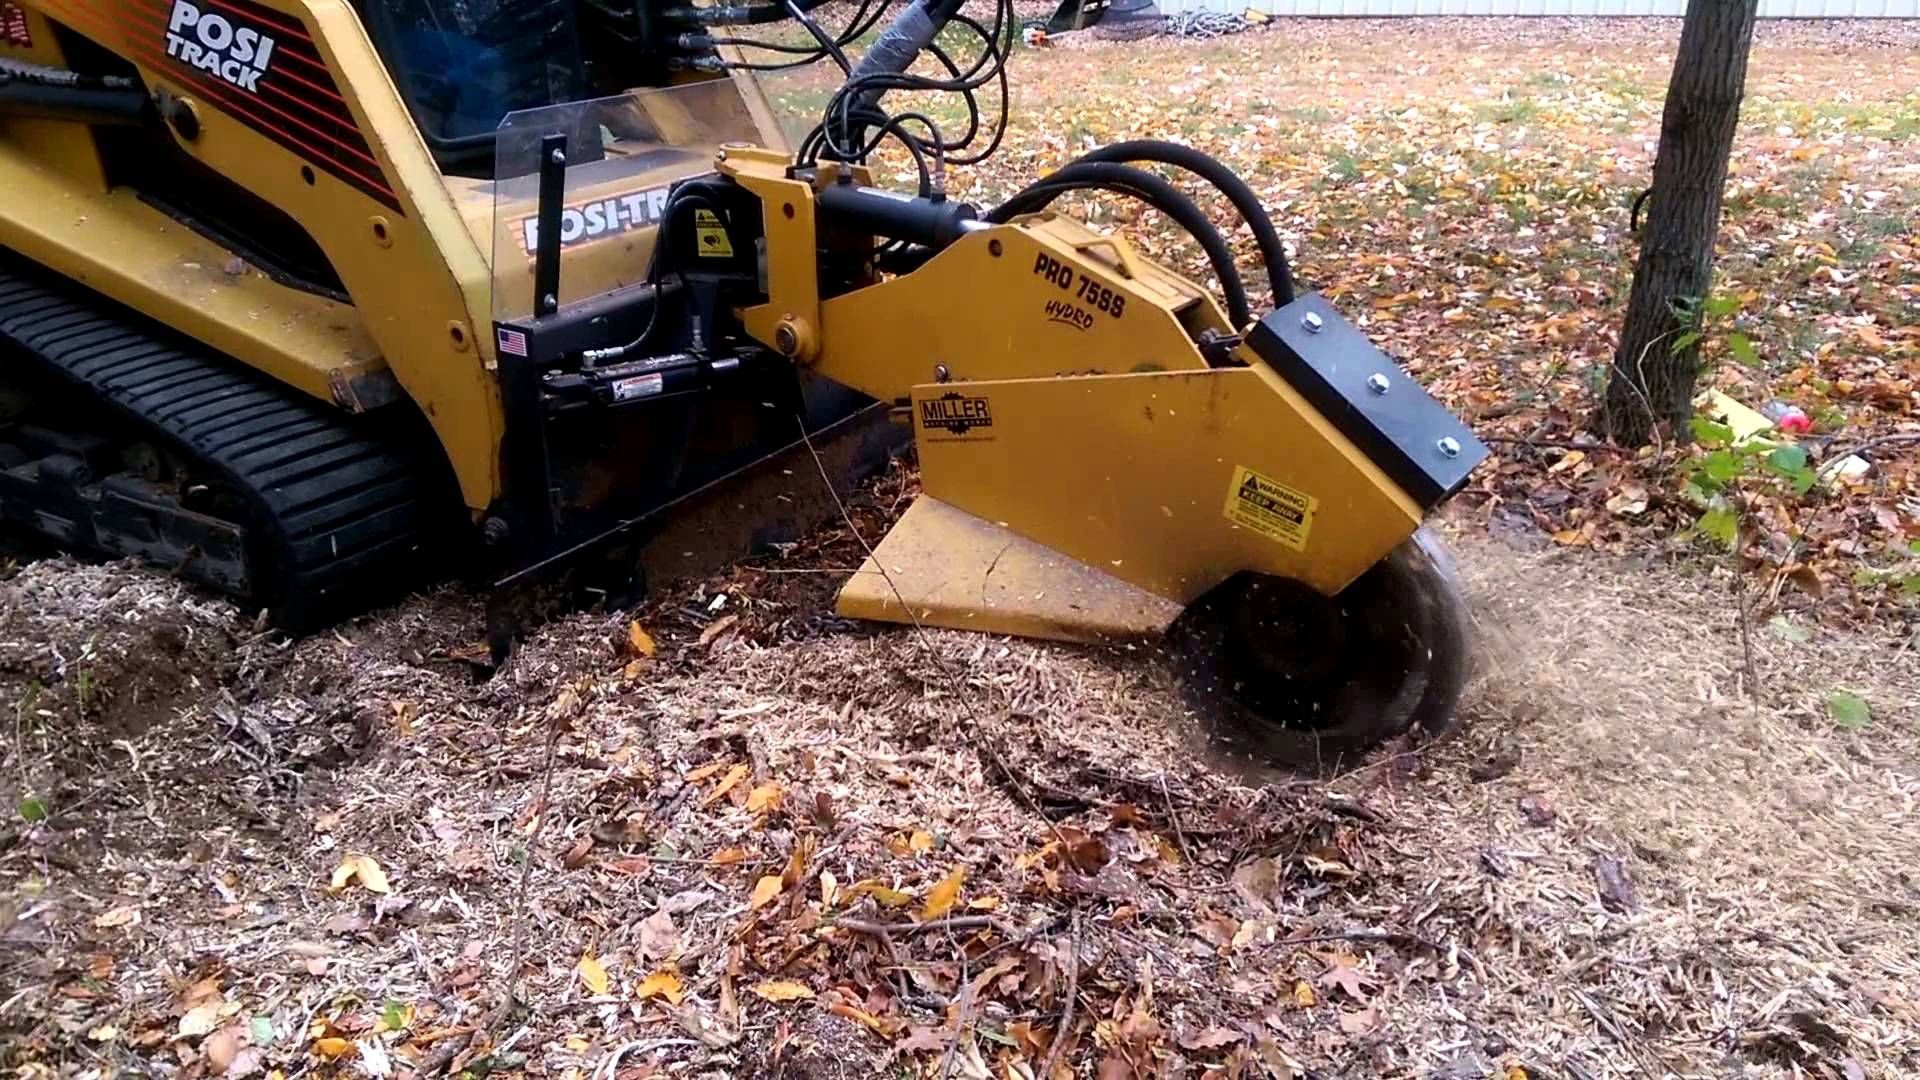 Charles tree services offers the best stump_grinding